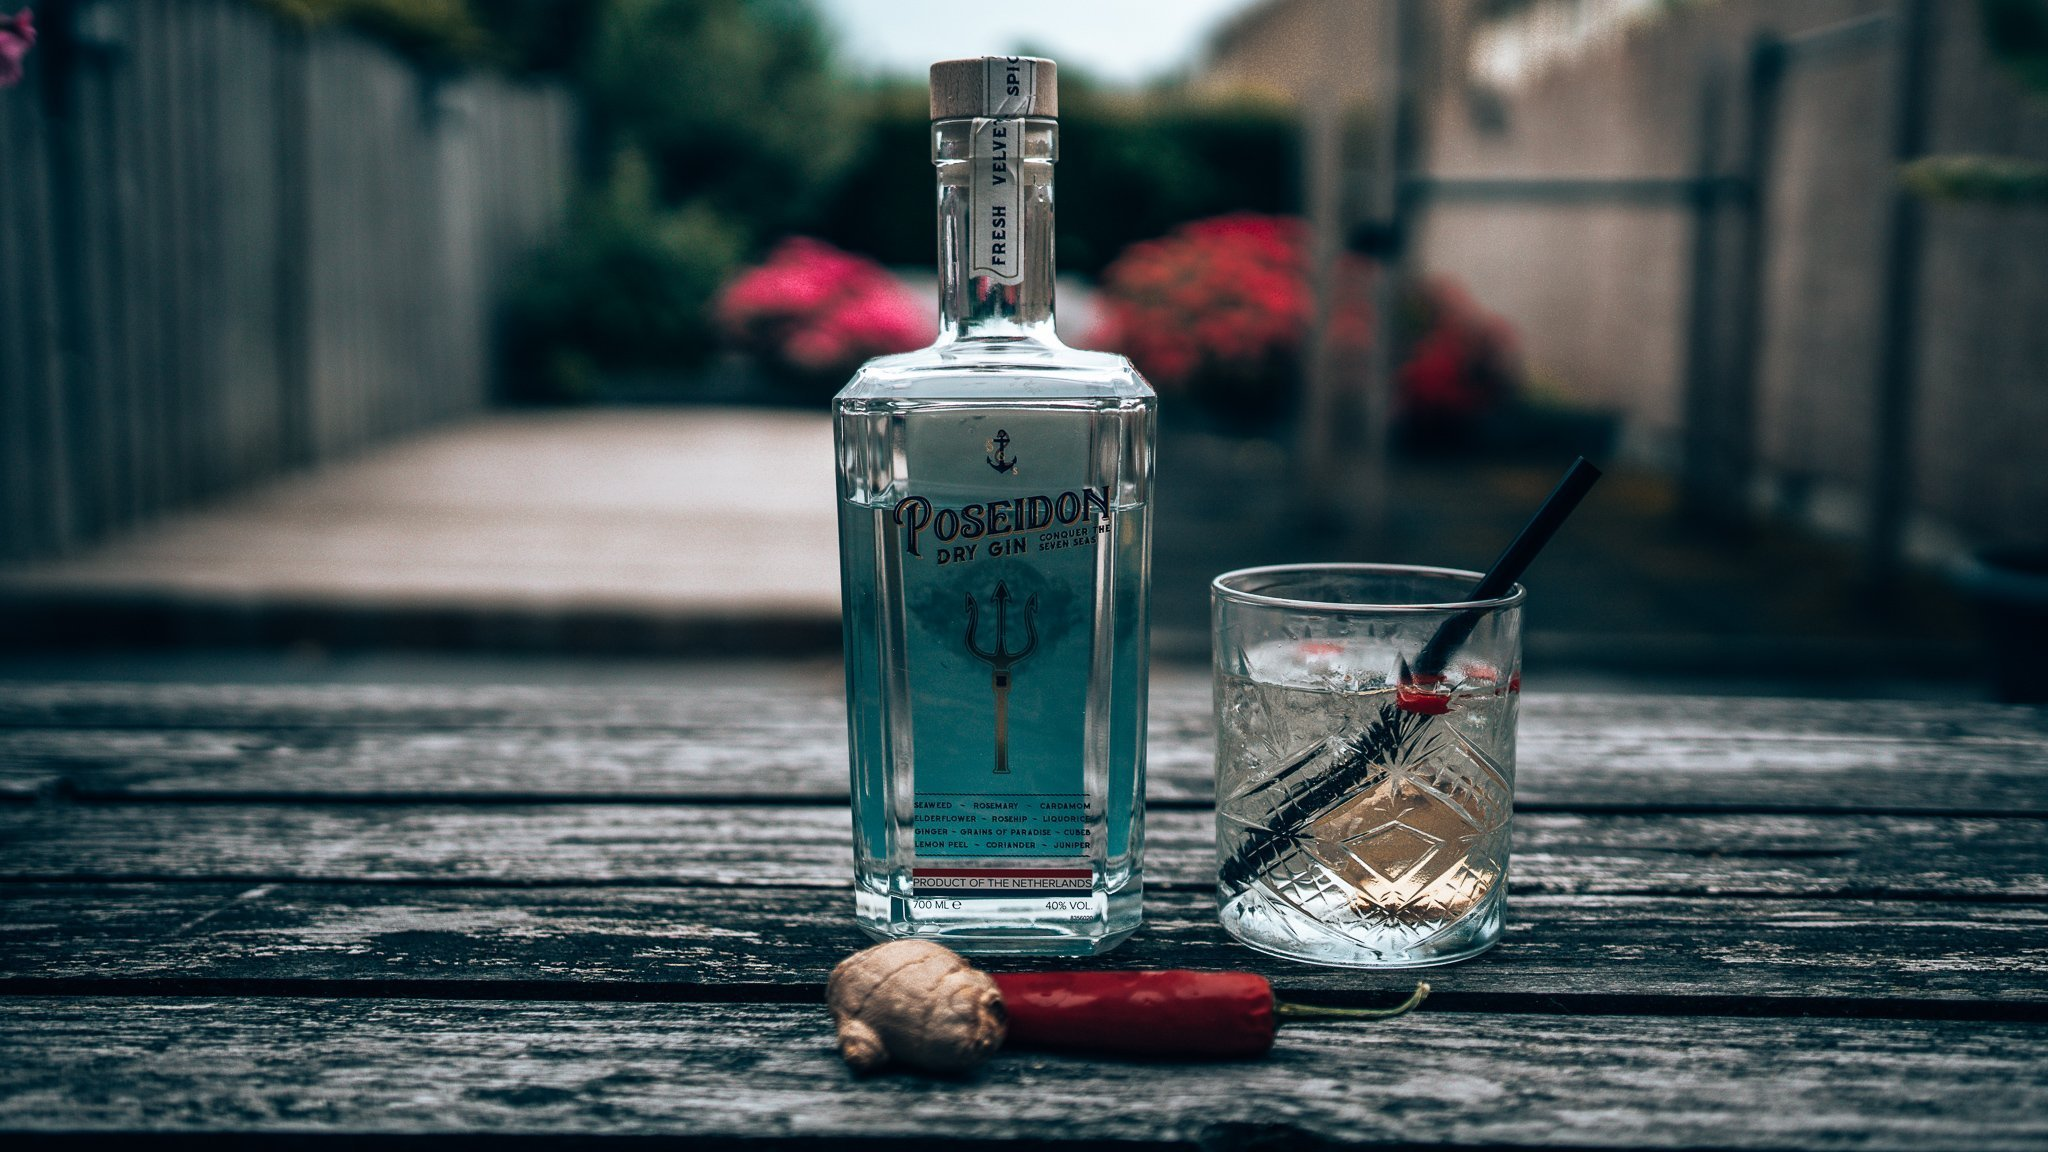 Spicy Poseidon & Ginger Ale, Poseidon Dry Gin perfect serve, Alles over gin.